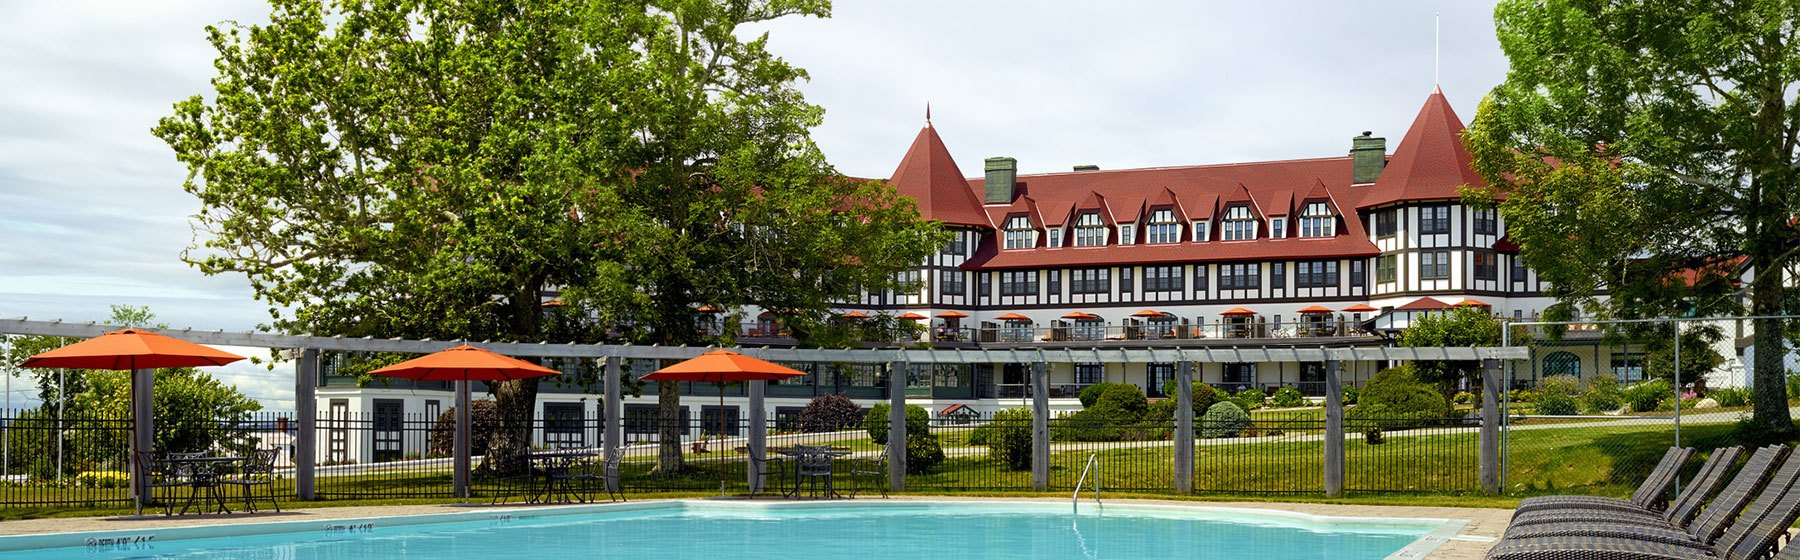 The resort About Algonquinresort, Andrews By The Sea